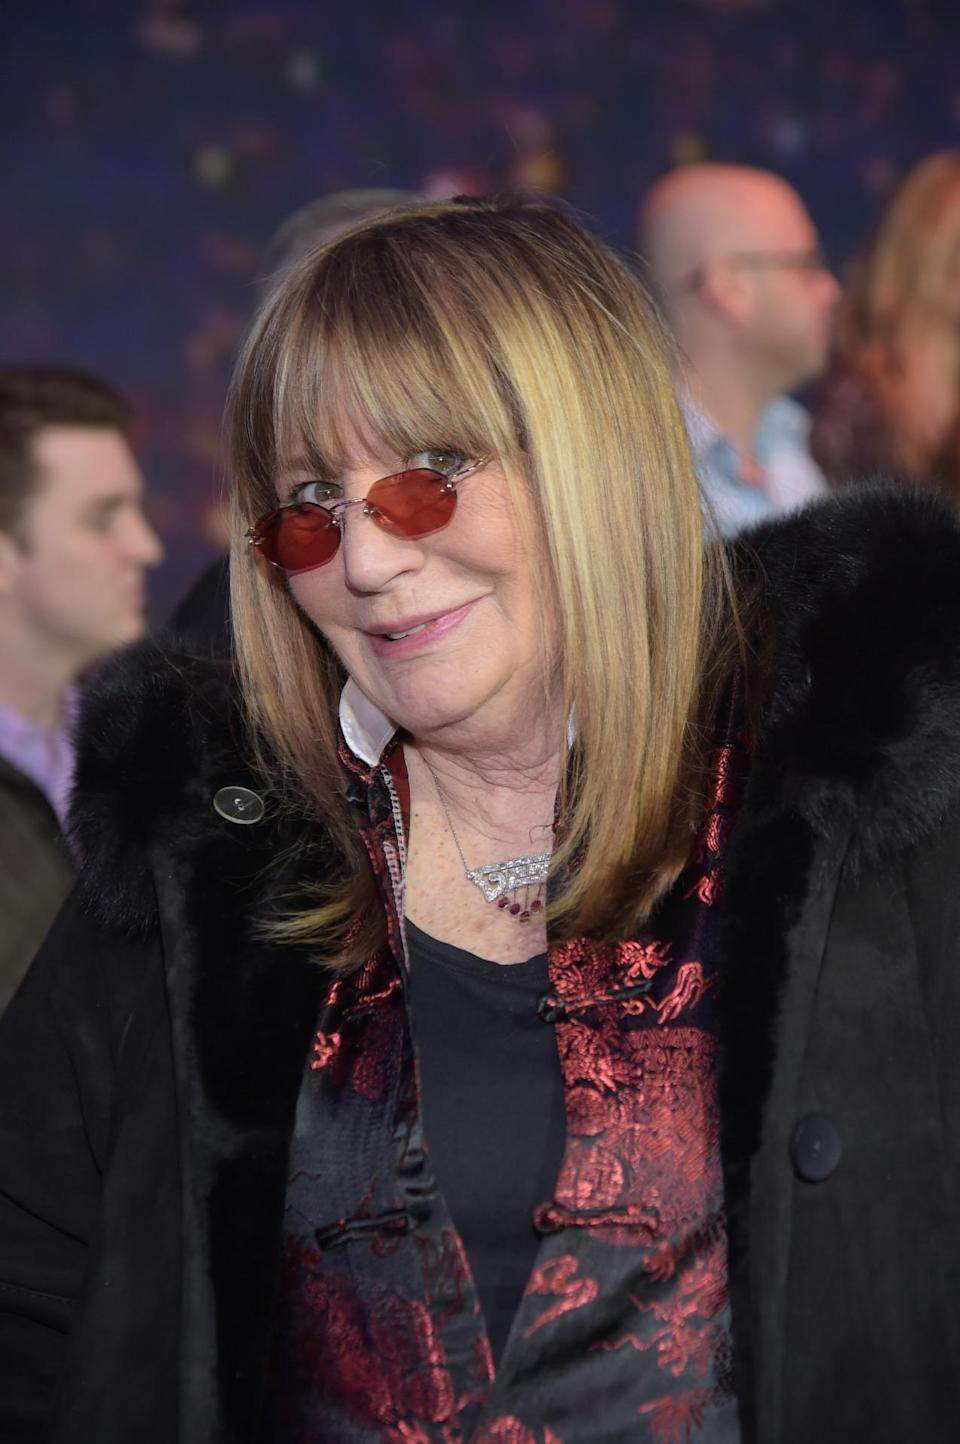 Penny Marshall channels Penny Lane with her round rose-colored glasses.